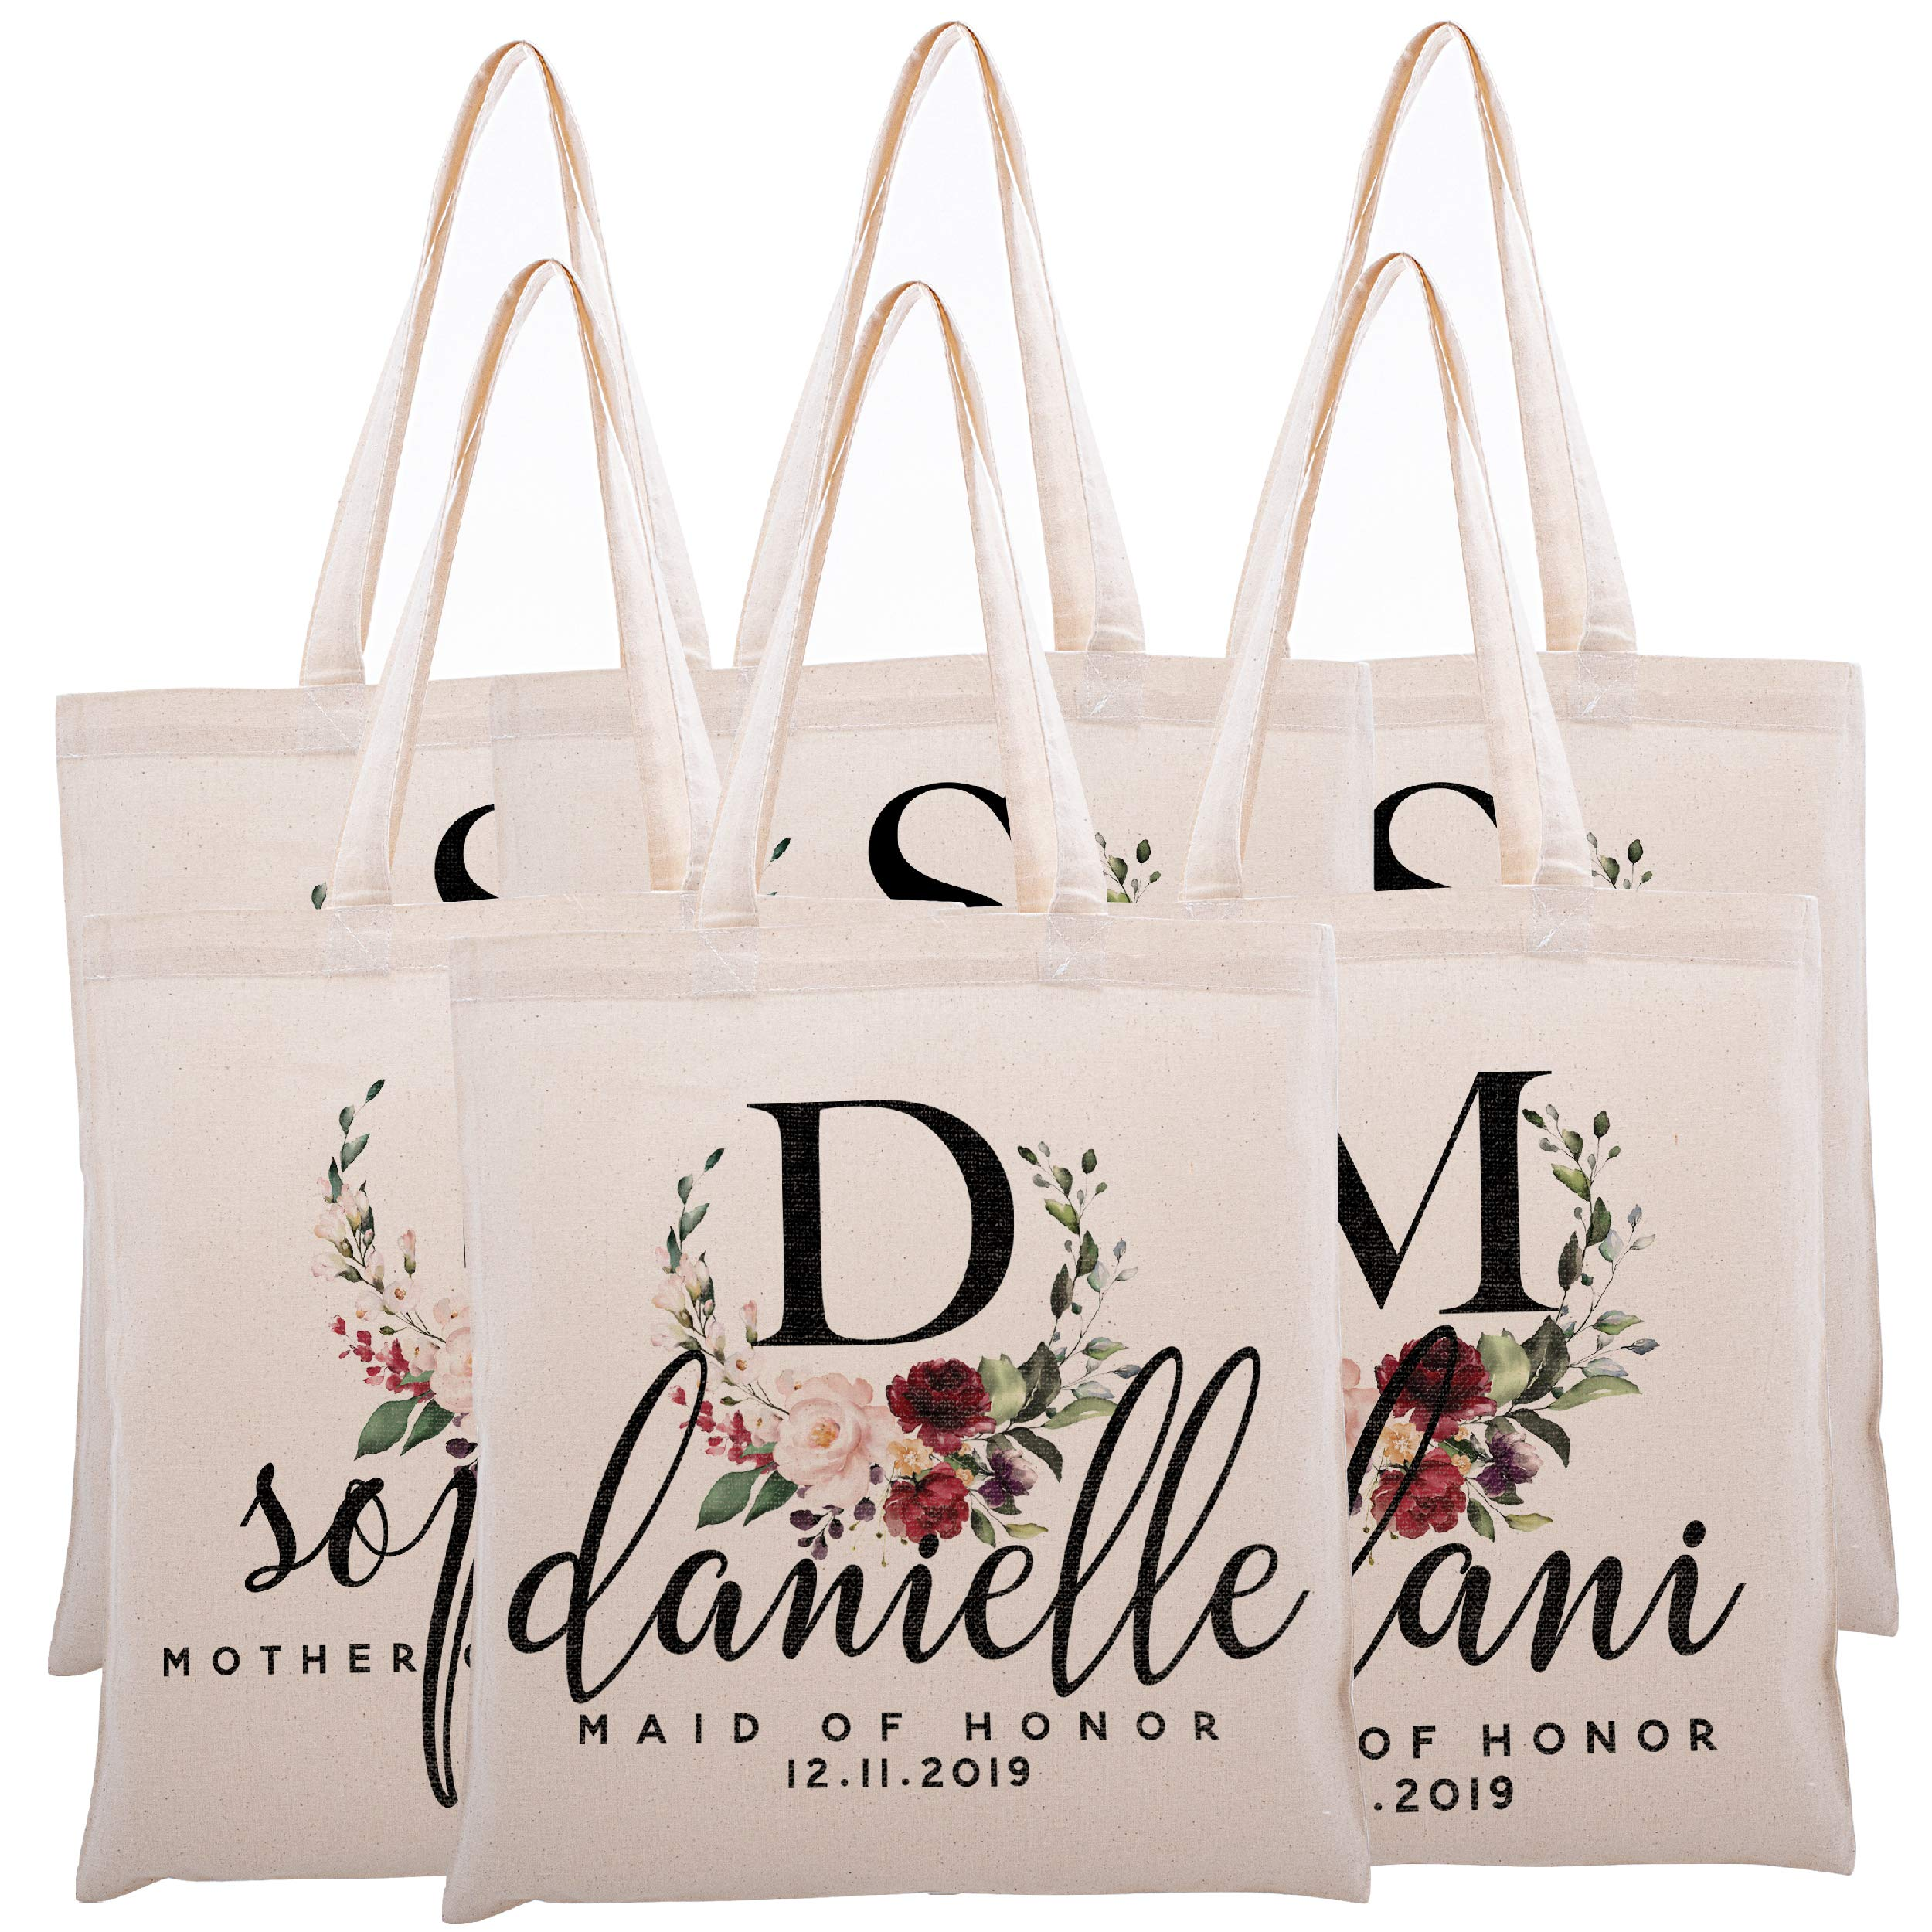 Personalized Tote Bag For Bridesmaids Wedding Customized Bachelorette Party Bag by Zexpa Apparel